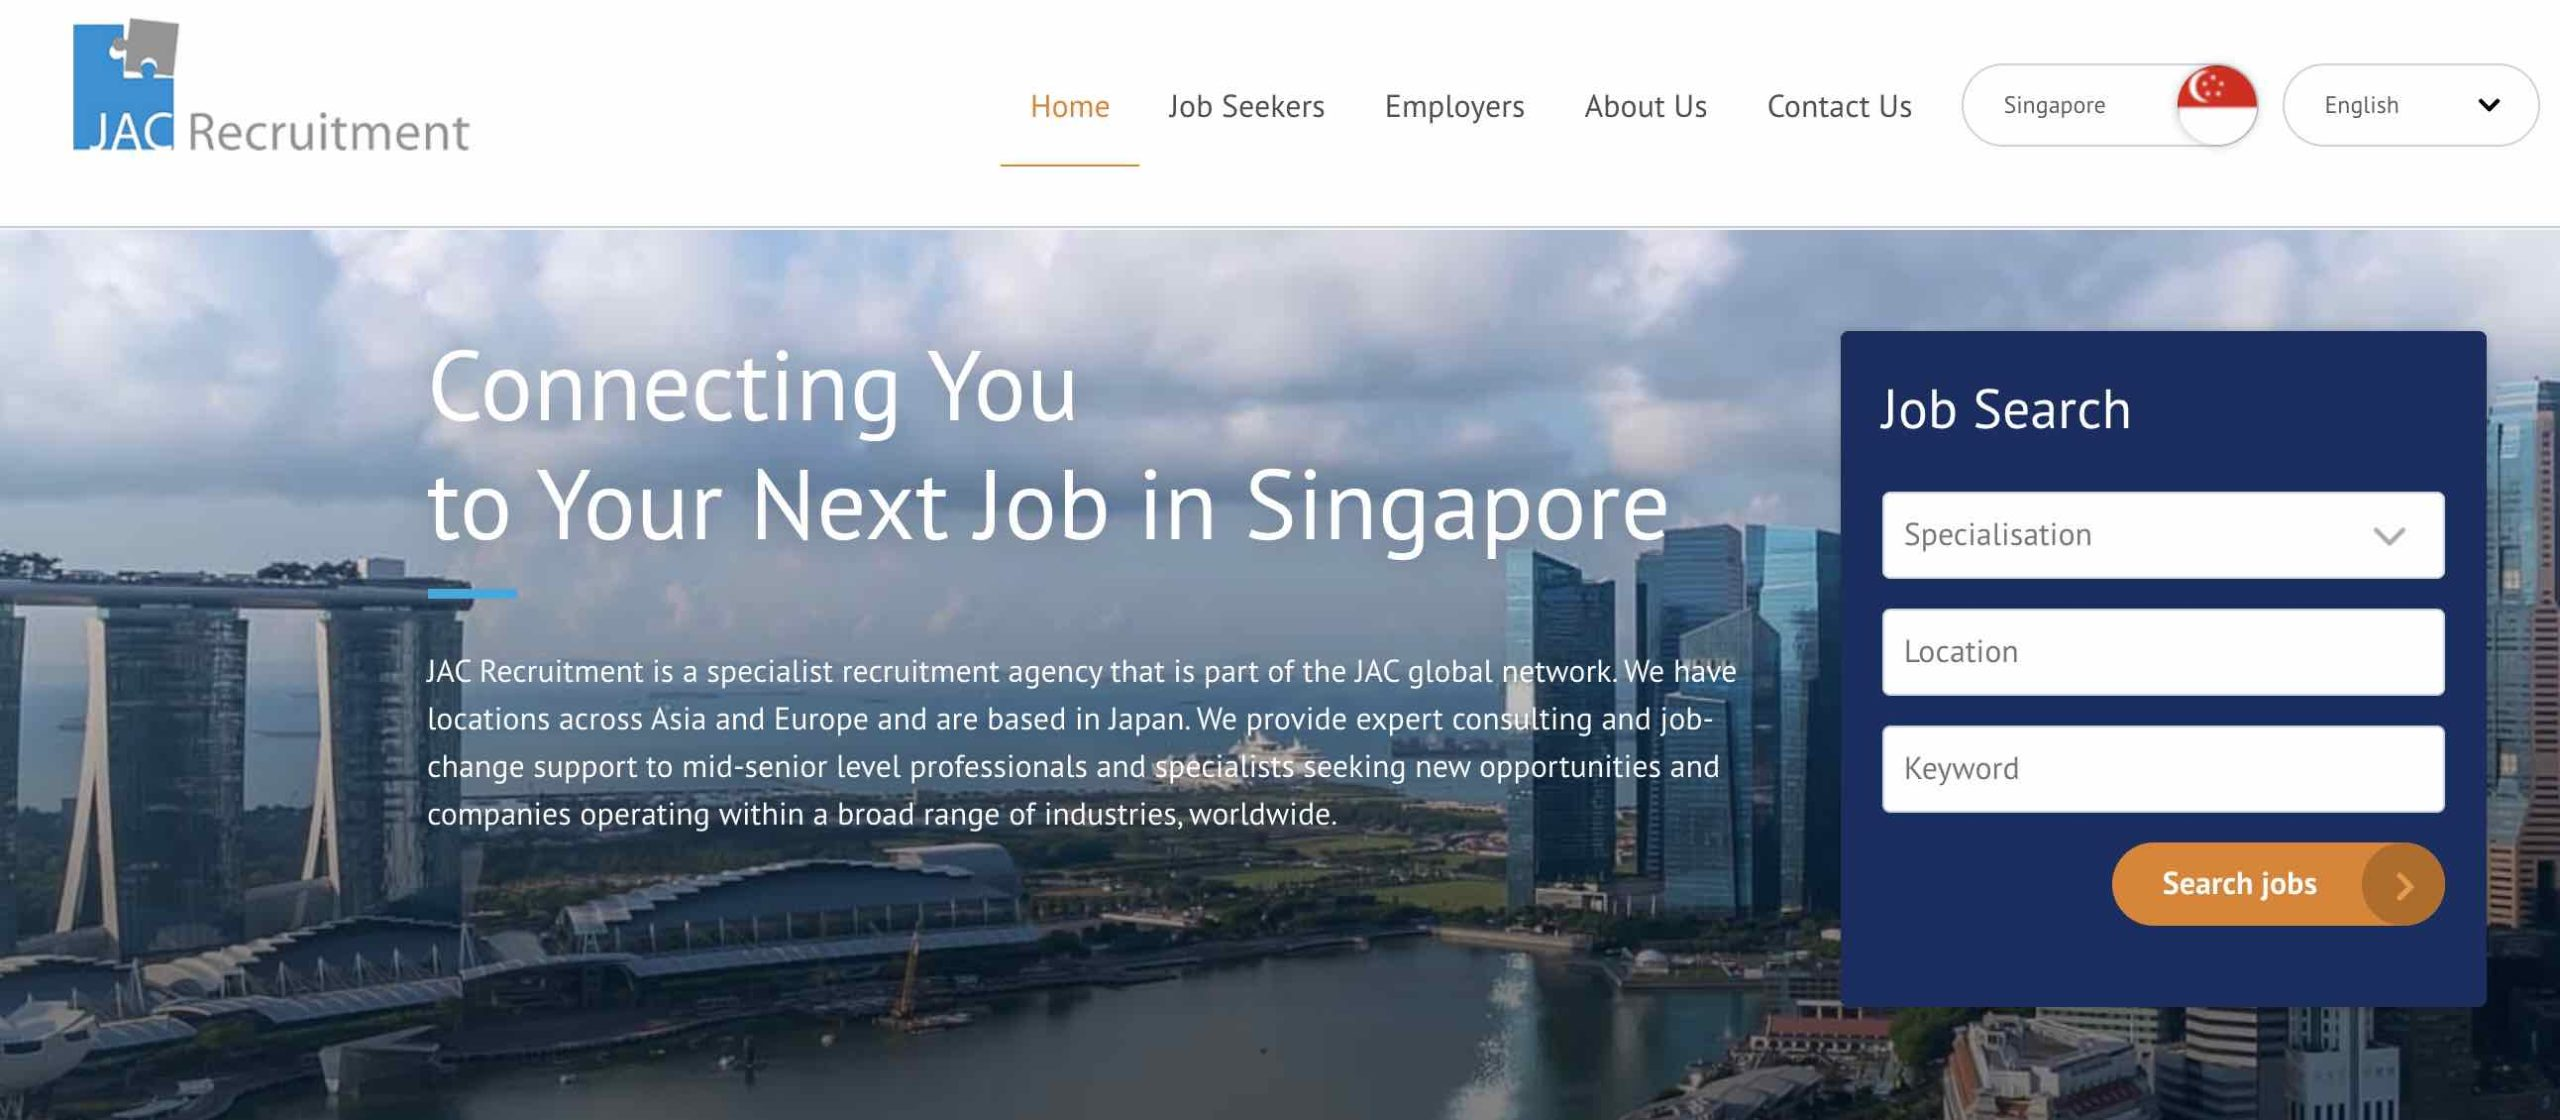 JAC Recruitment Singapore - Recruitment agency and executive search firm